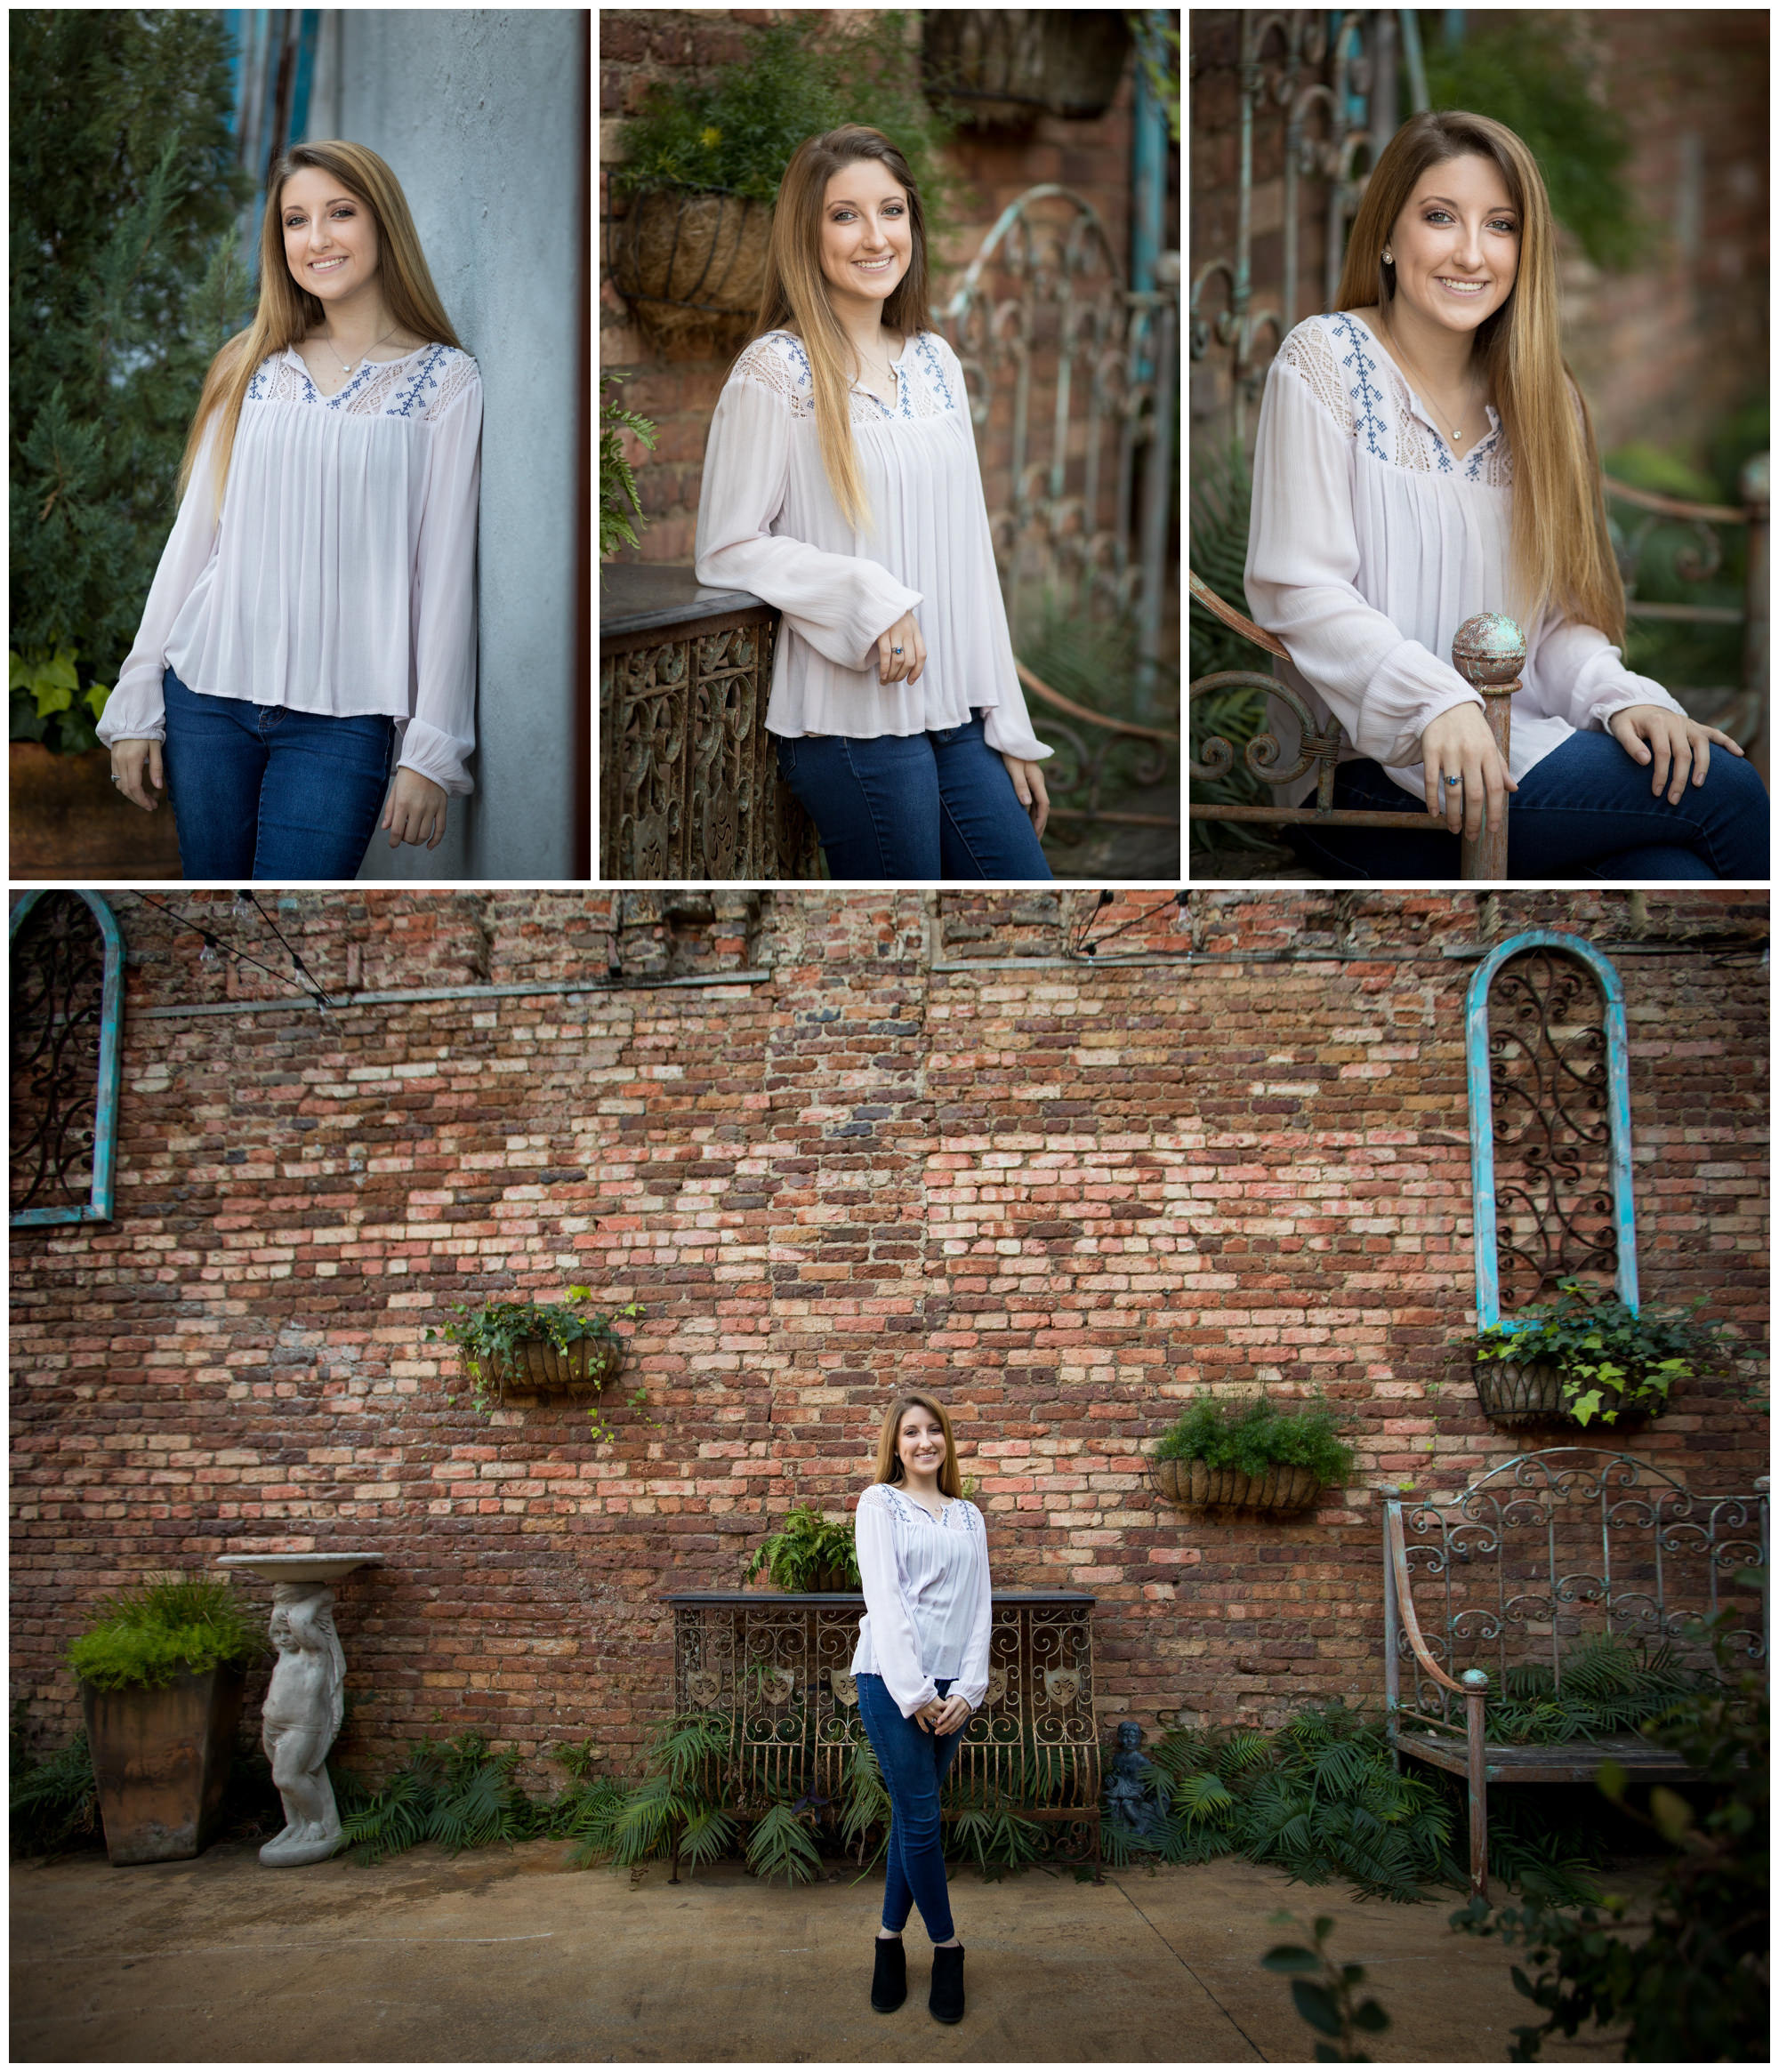 Senior pictures on Foster street in downtown Dothan, AL. Nicole Everson Photography.